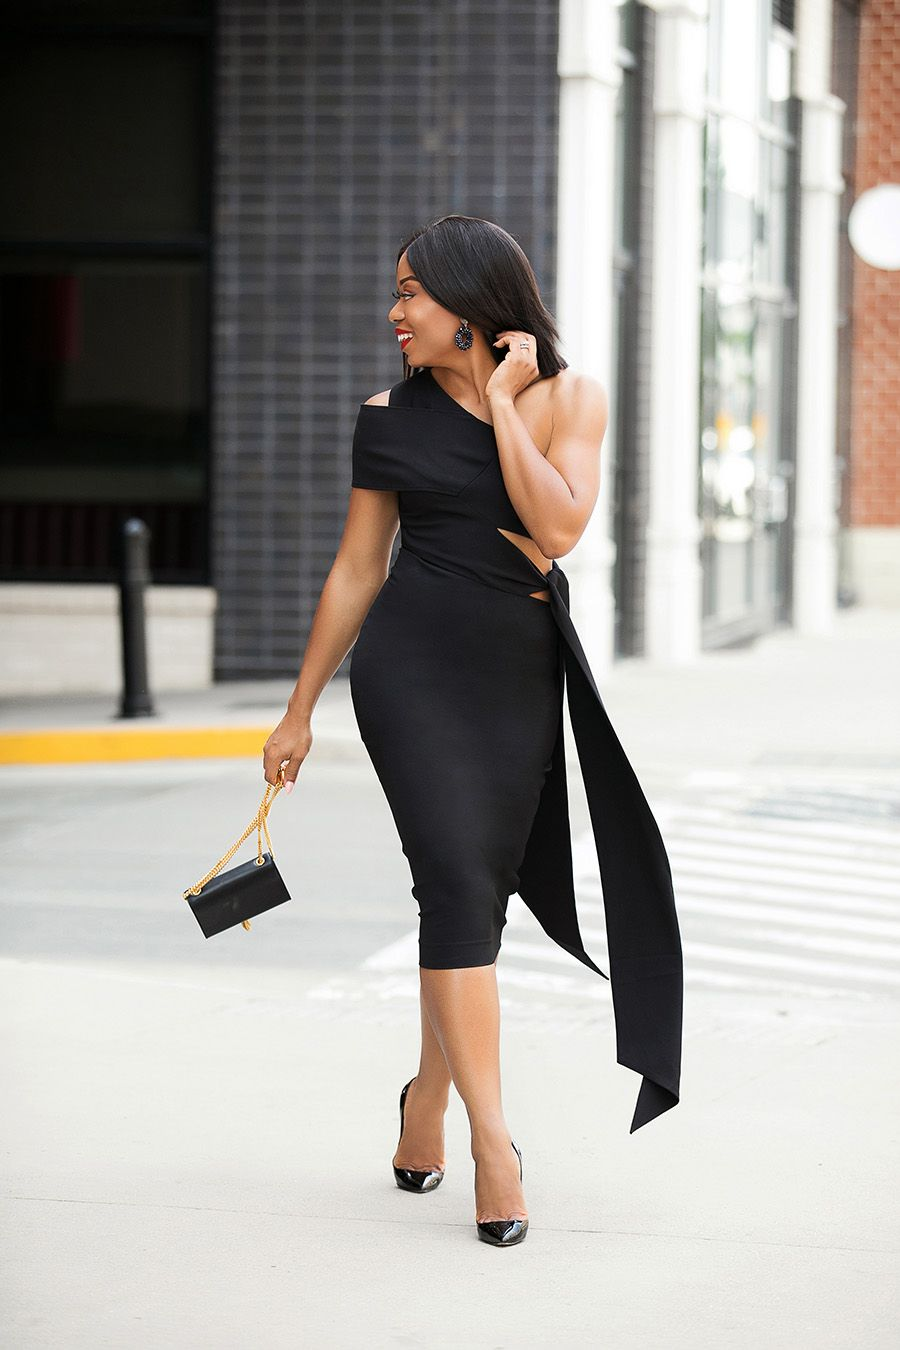 How To Wear Black To Summer Wedding Summer Wedding Outfits Fashion Fashion For Petite Women